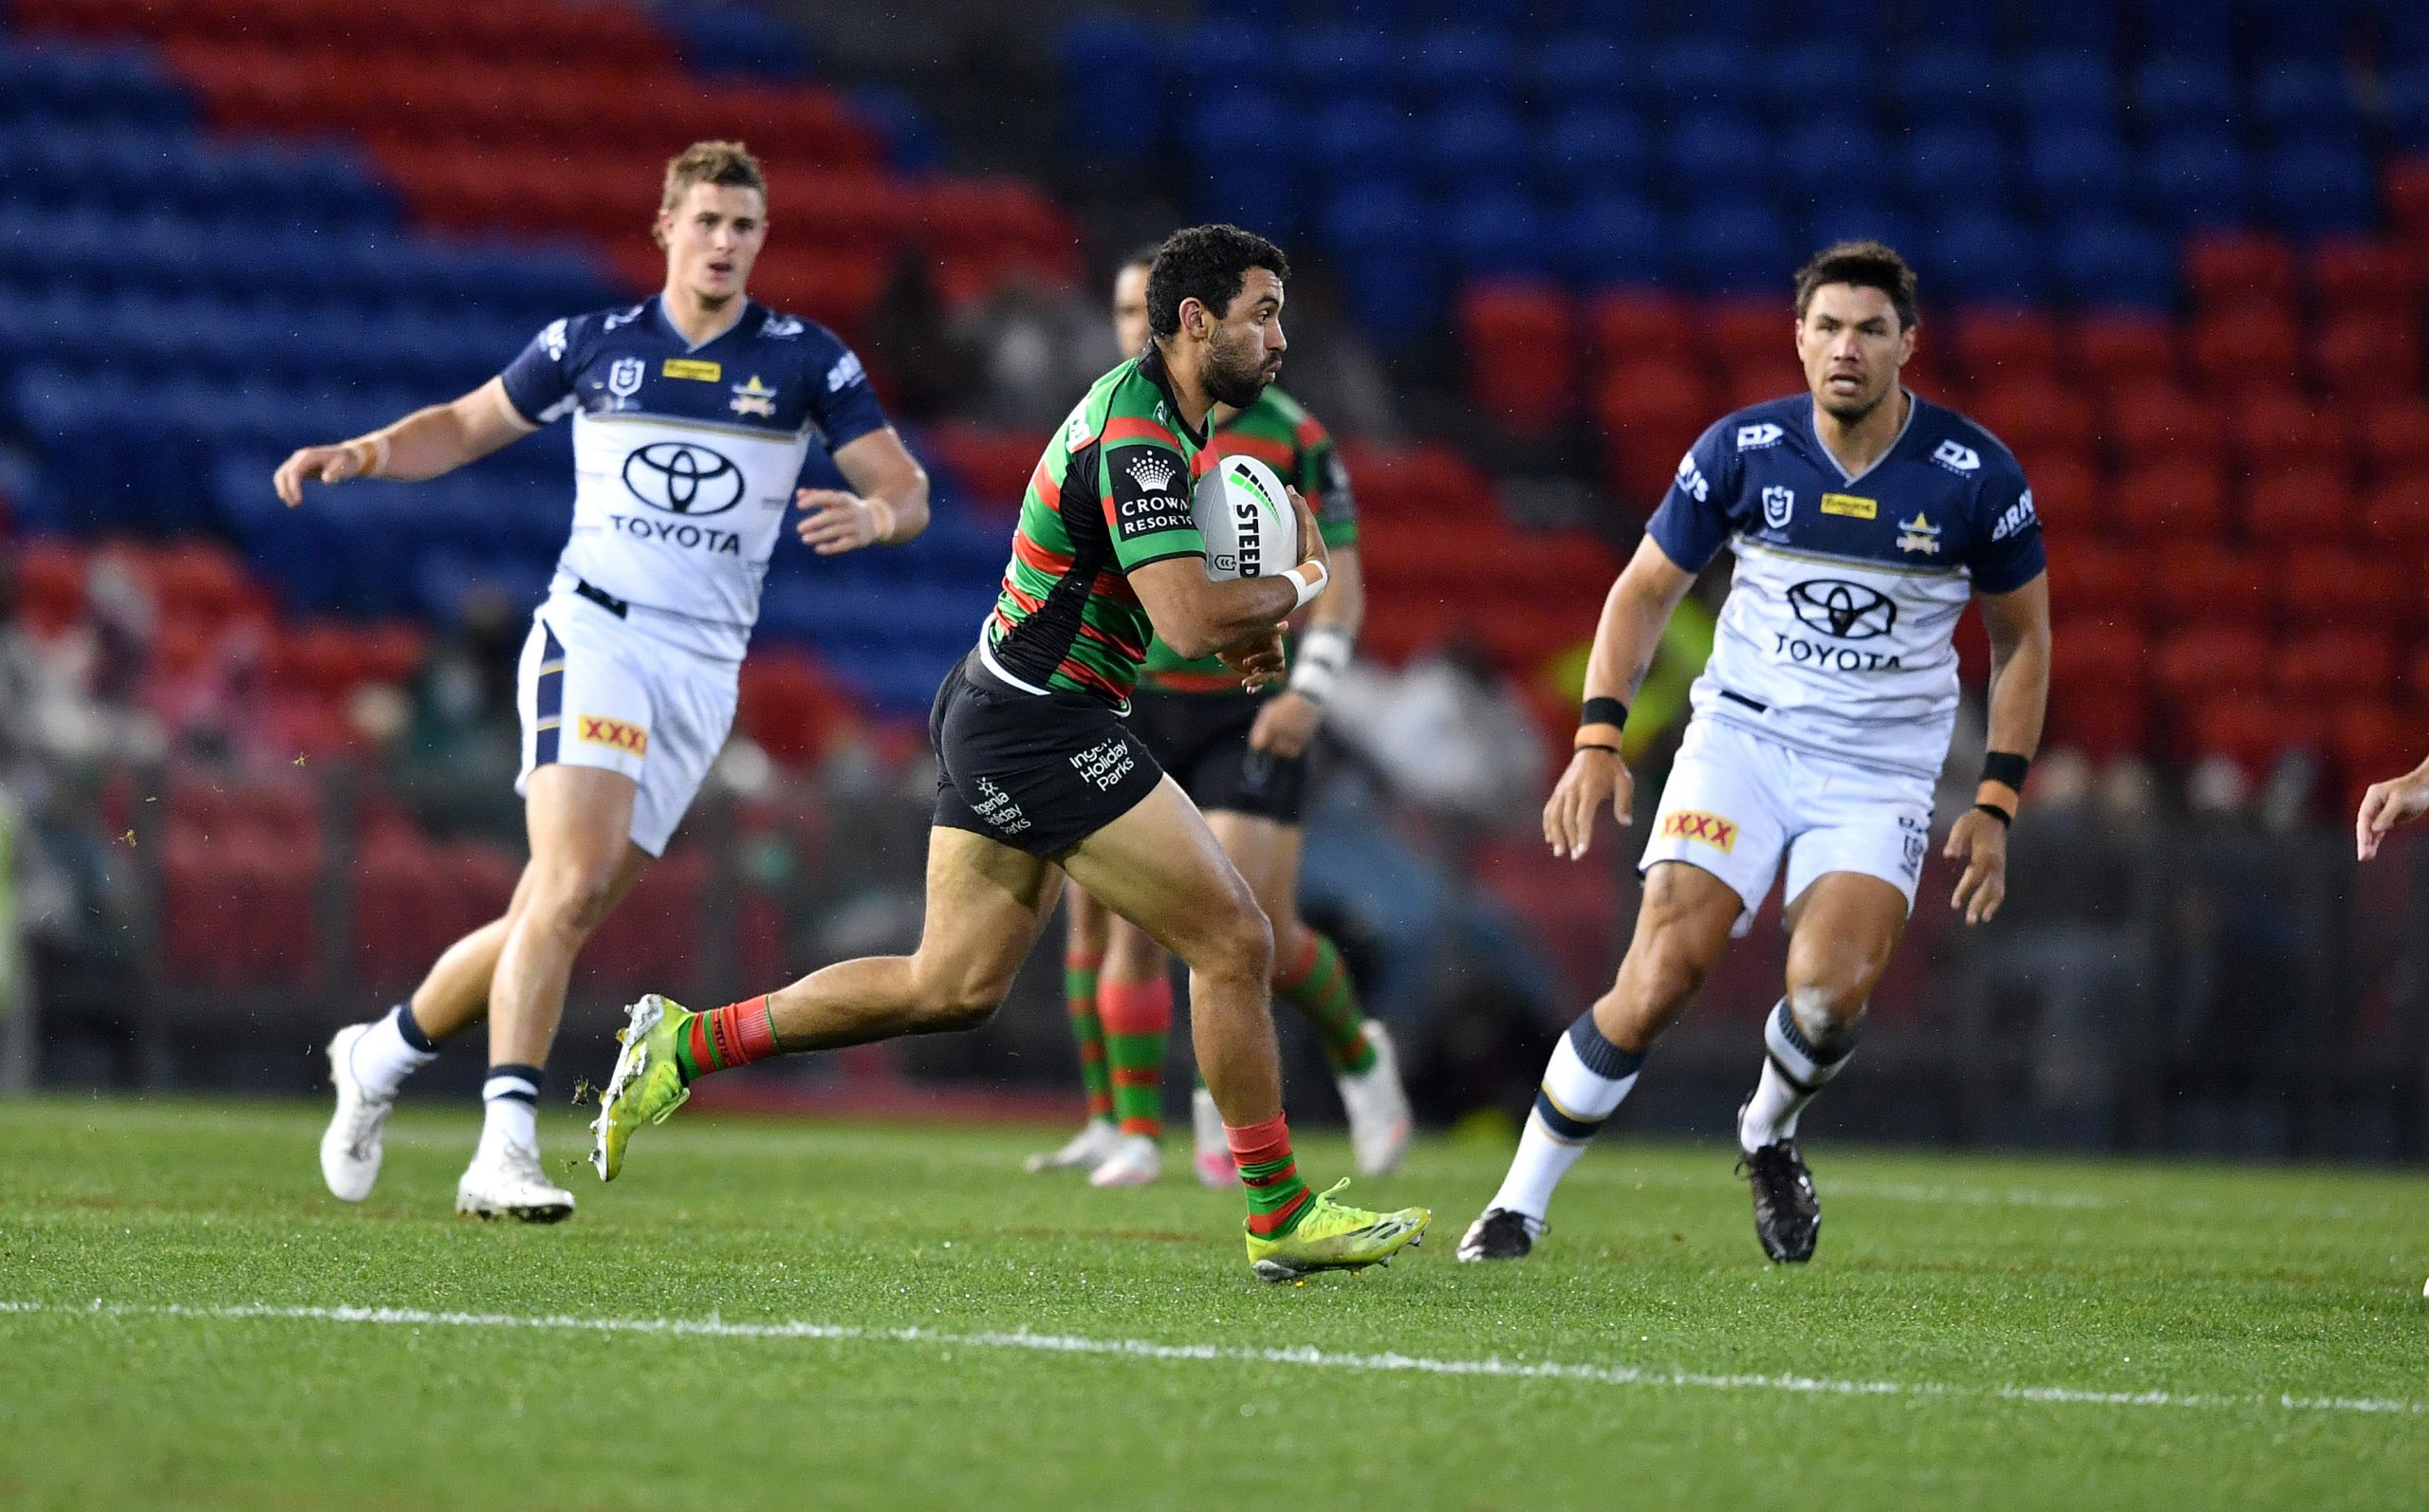 All NSW and ACT based NRL teams to relocate to Queensland for a month